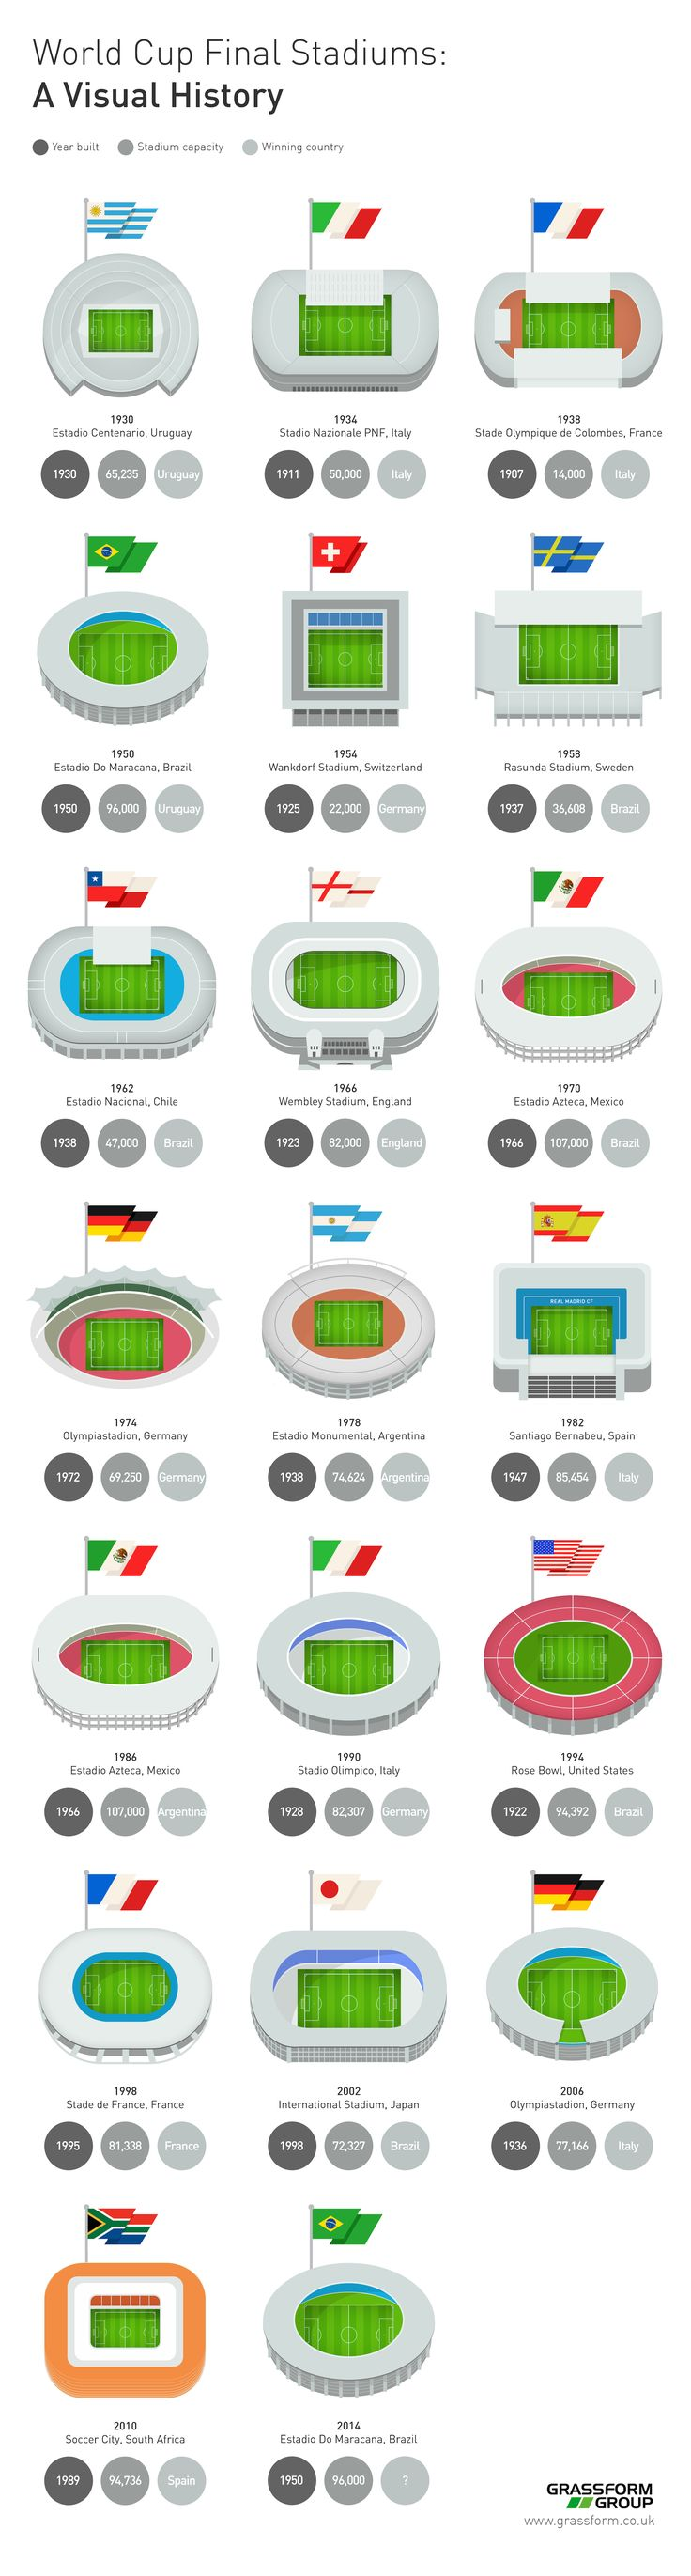 #WorldCup Final Stadiums - A Visual History.